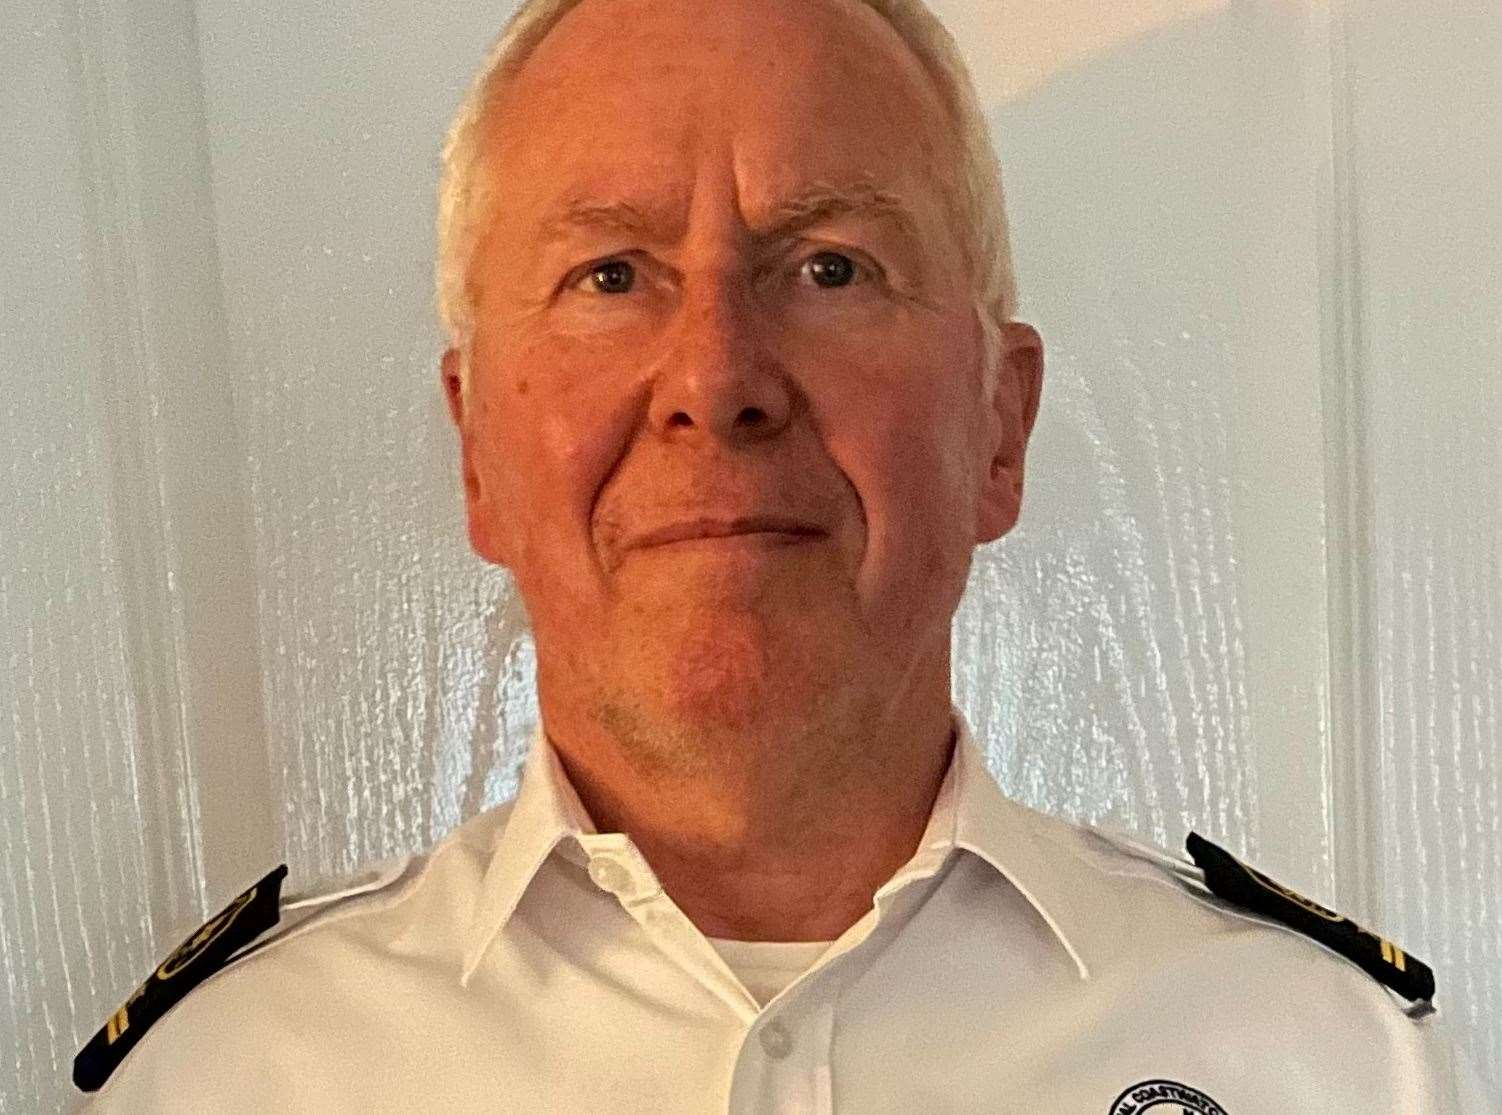 Herne Bay Coastwatch station manager Paul Clarke